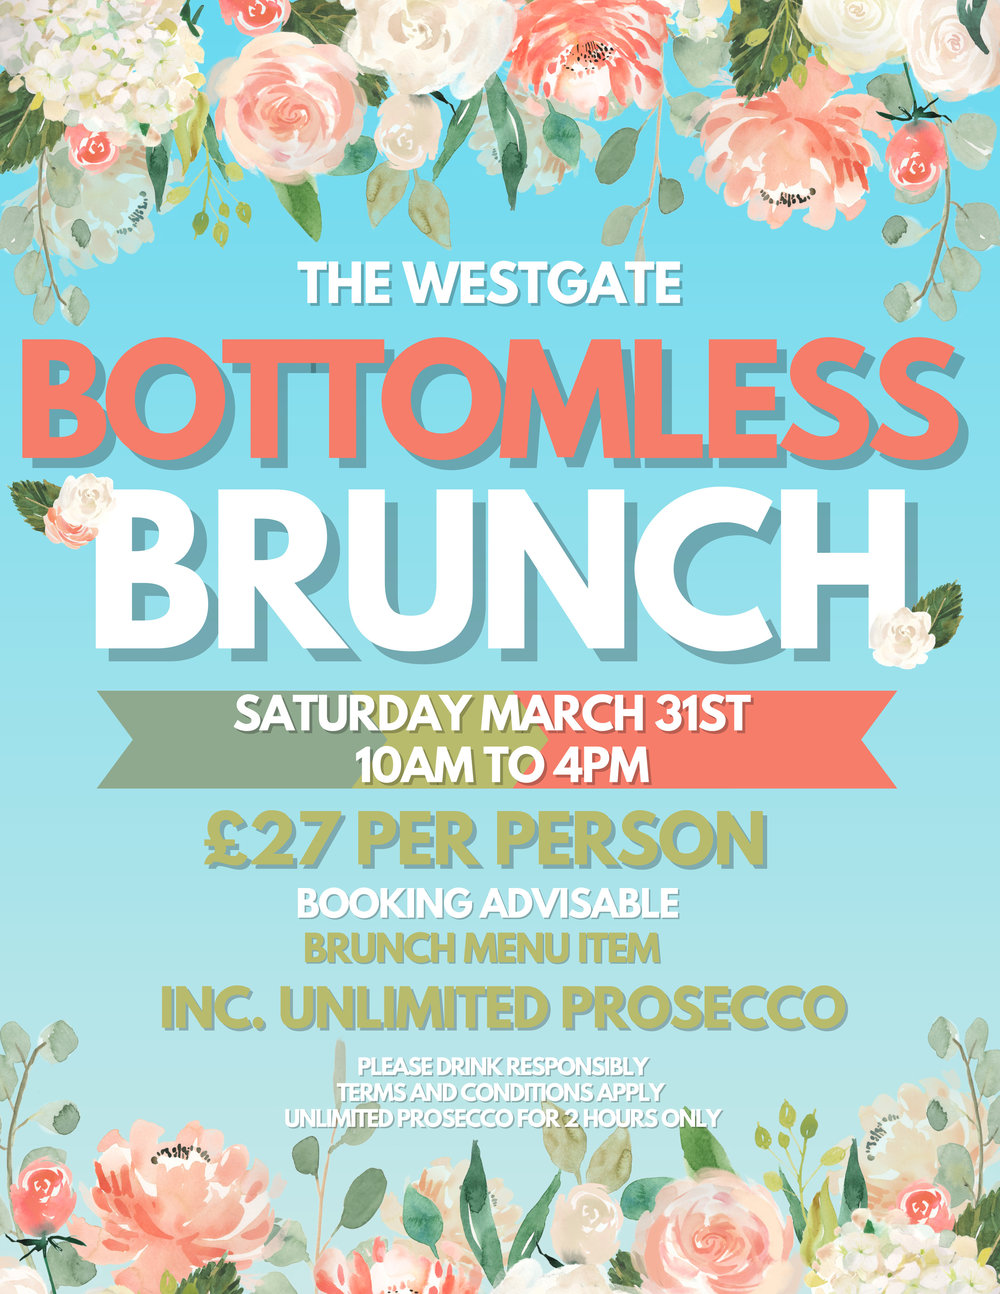 The Westgate Bottomless Brunch